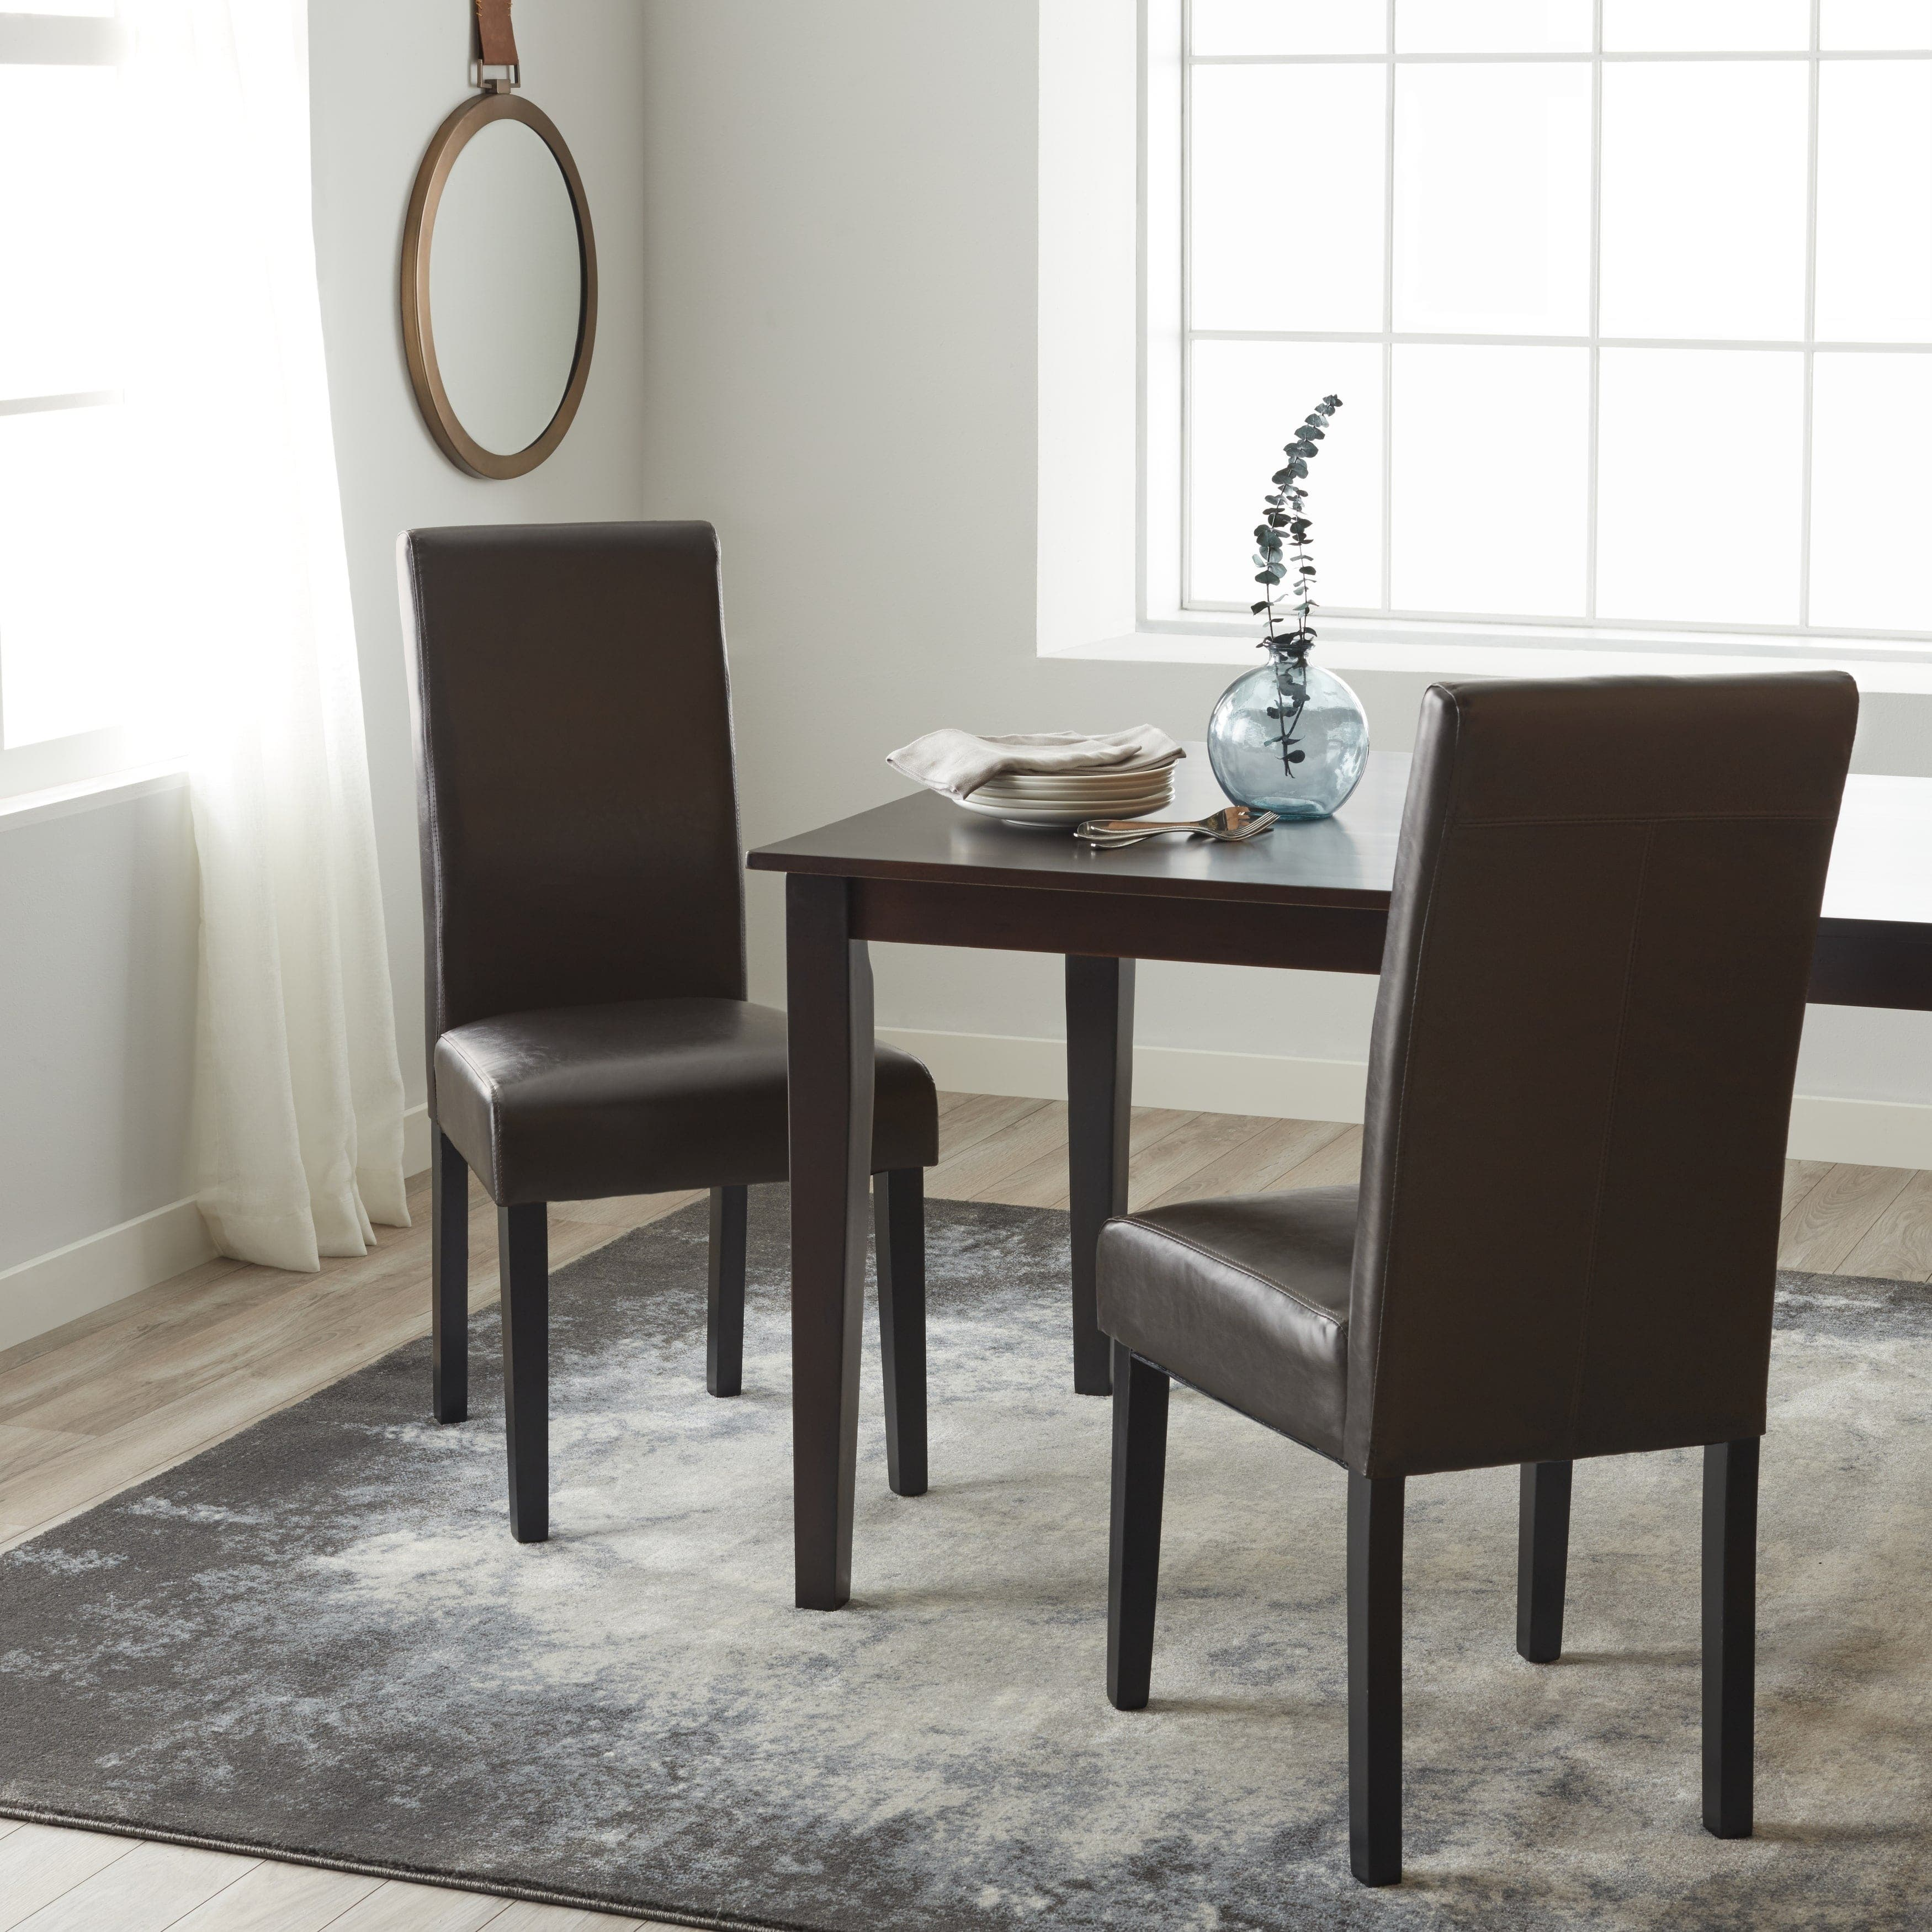 Kitchen & Dining Room Chairs For Less